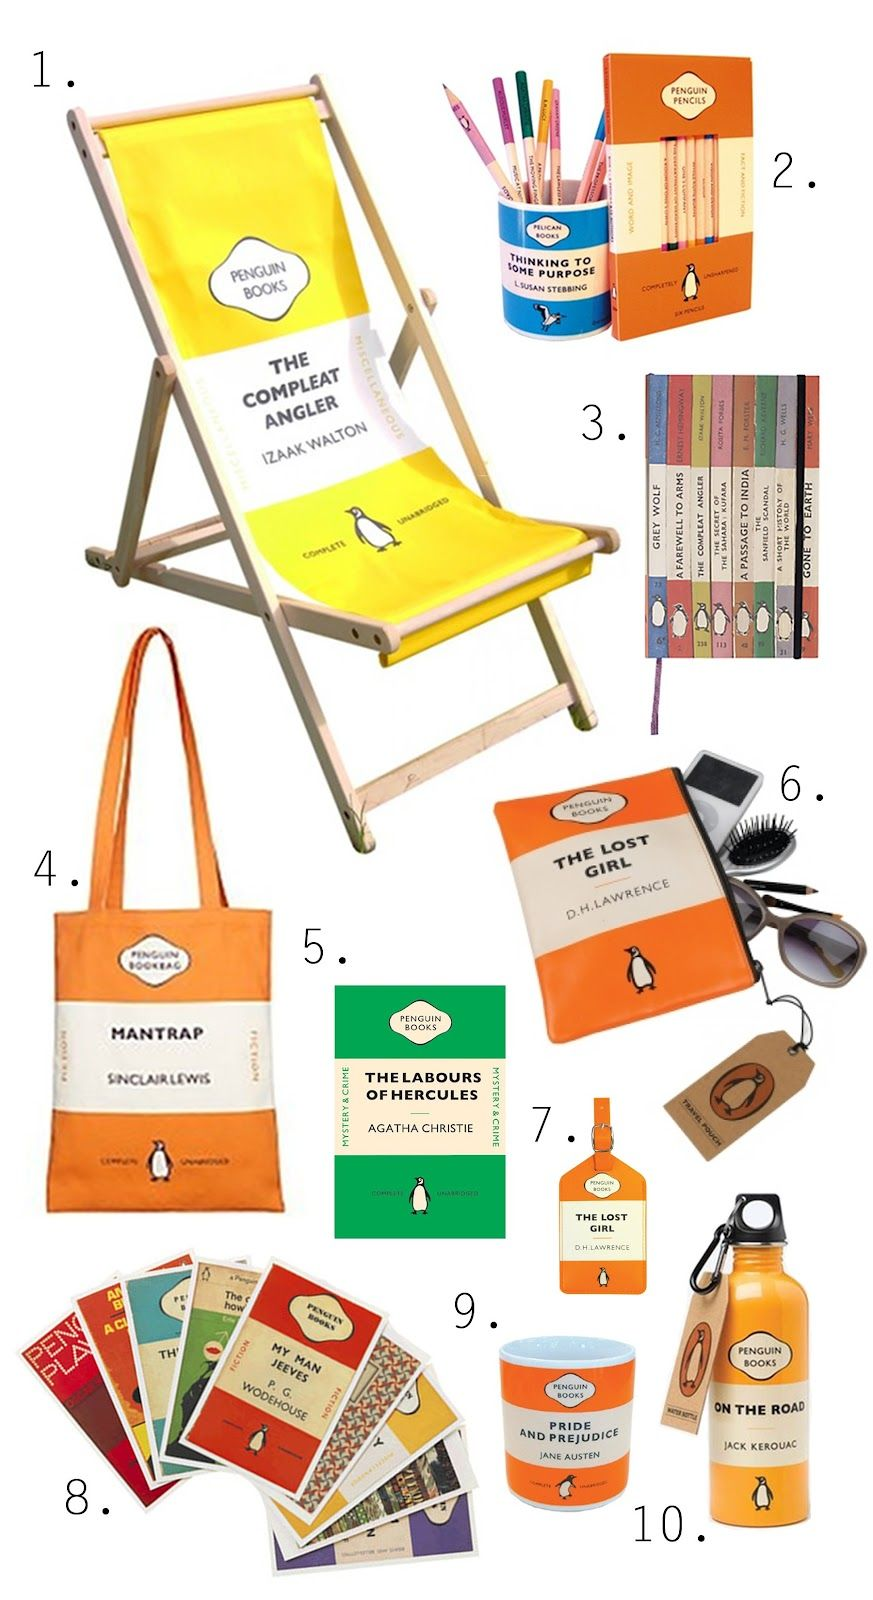 Penguin Book Cover Coffee Mugs : Penguin covers on various merchandise from deckchairs to